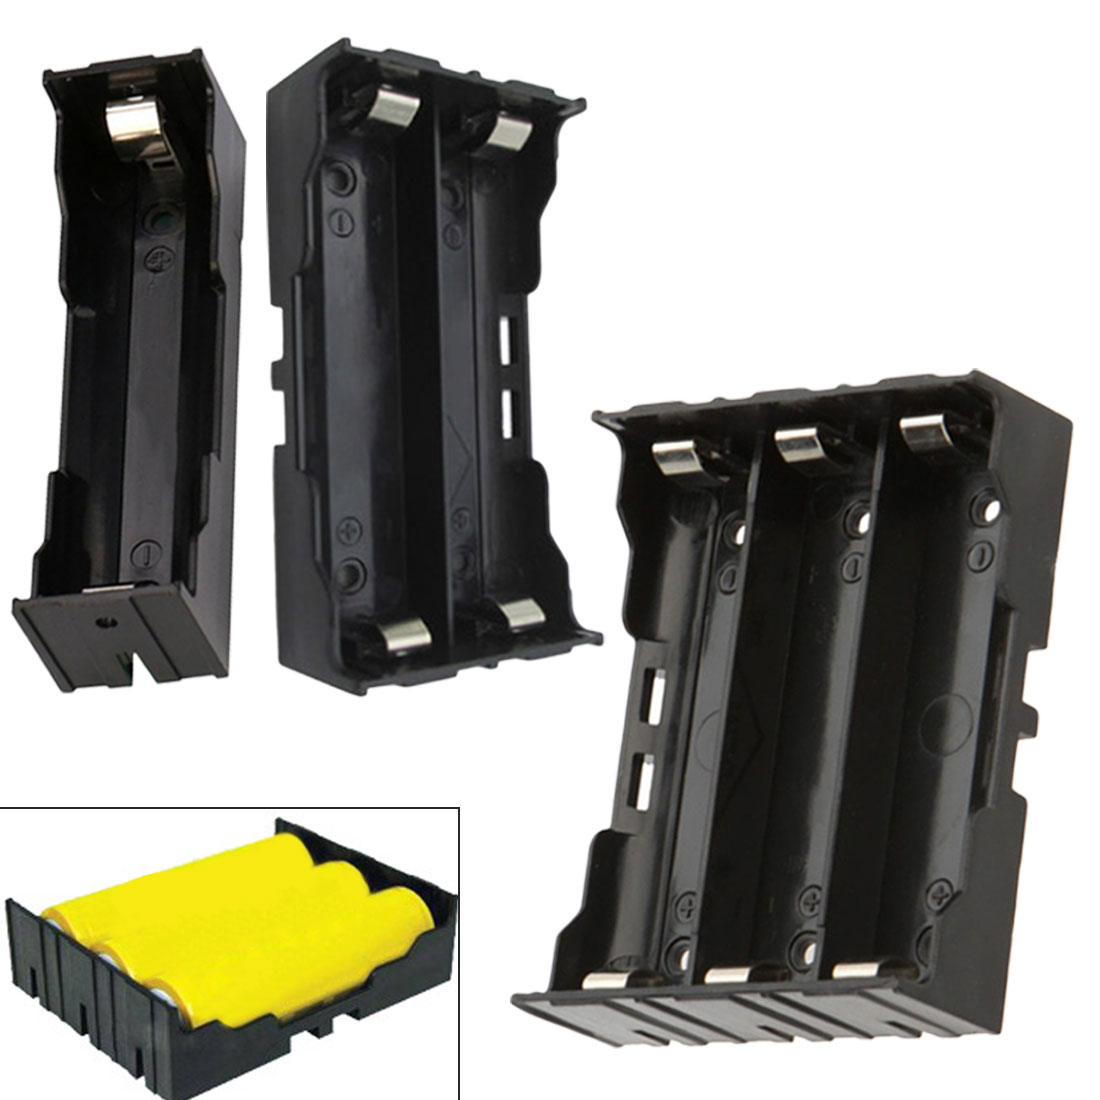 1PCS Plastic Battery Holder Storage Box Case For 2x 18650 Rechargeable Battery